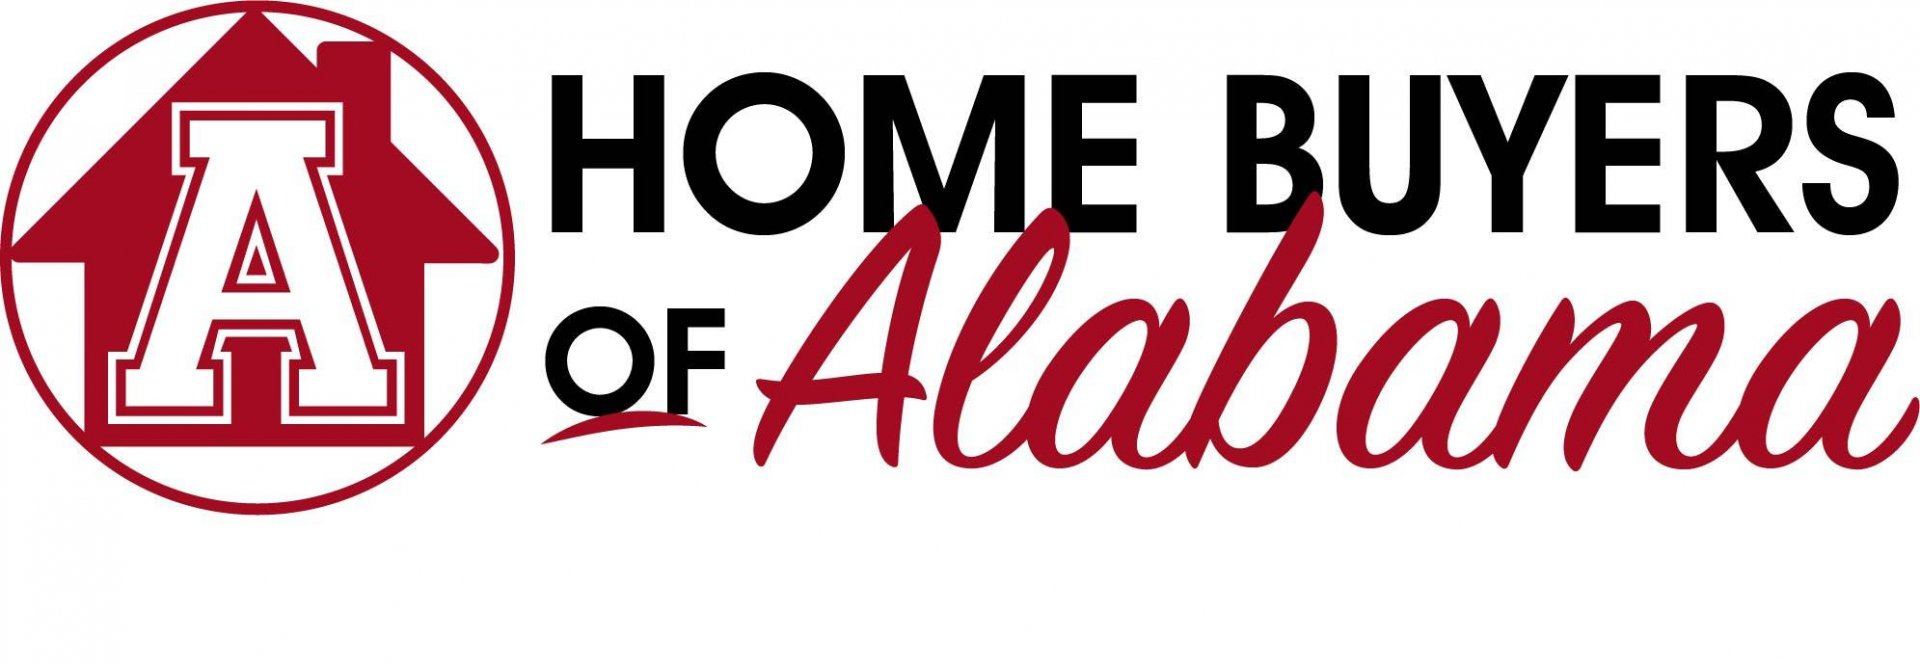 Home Buyers of Birmingham logo